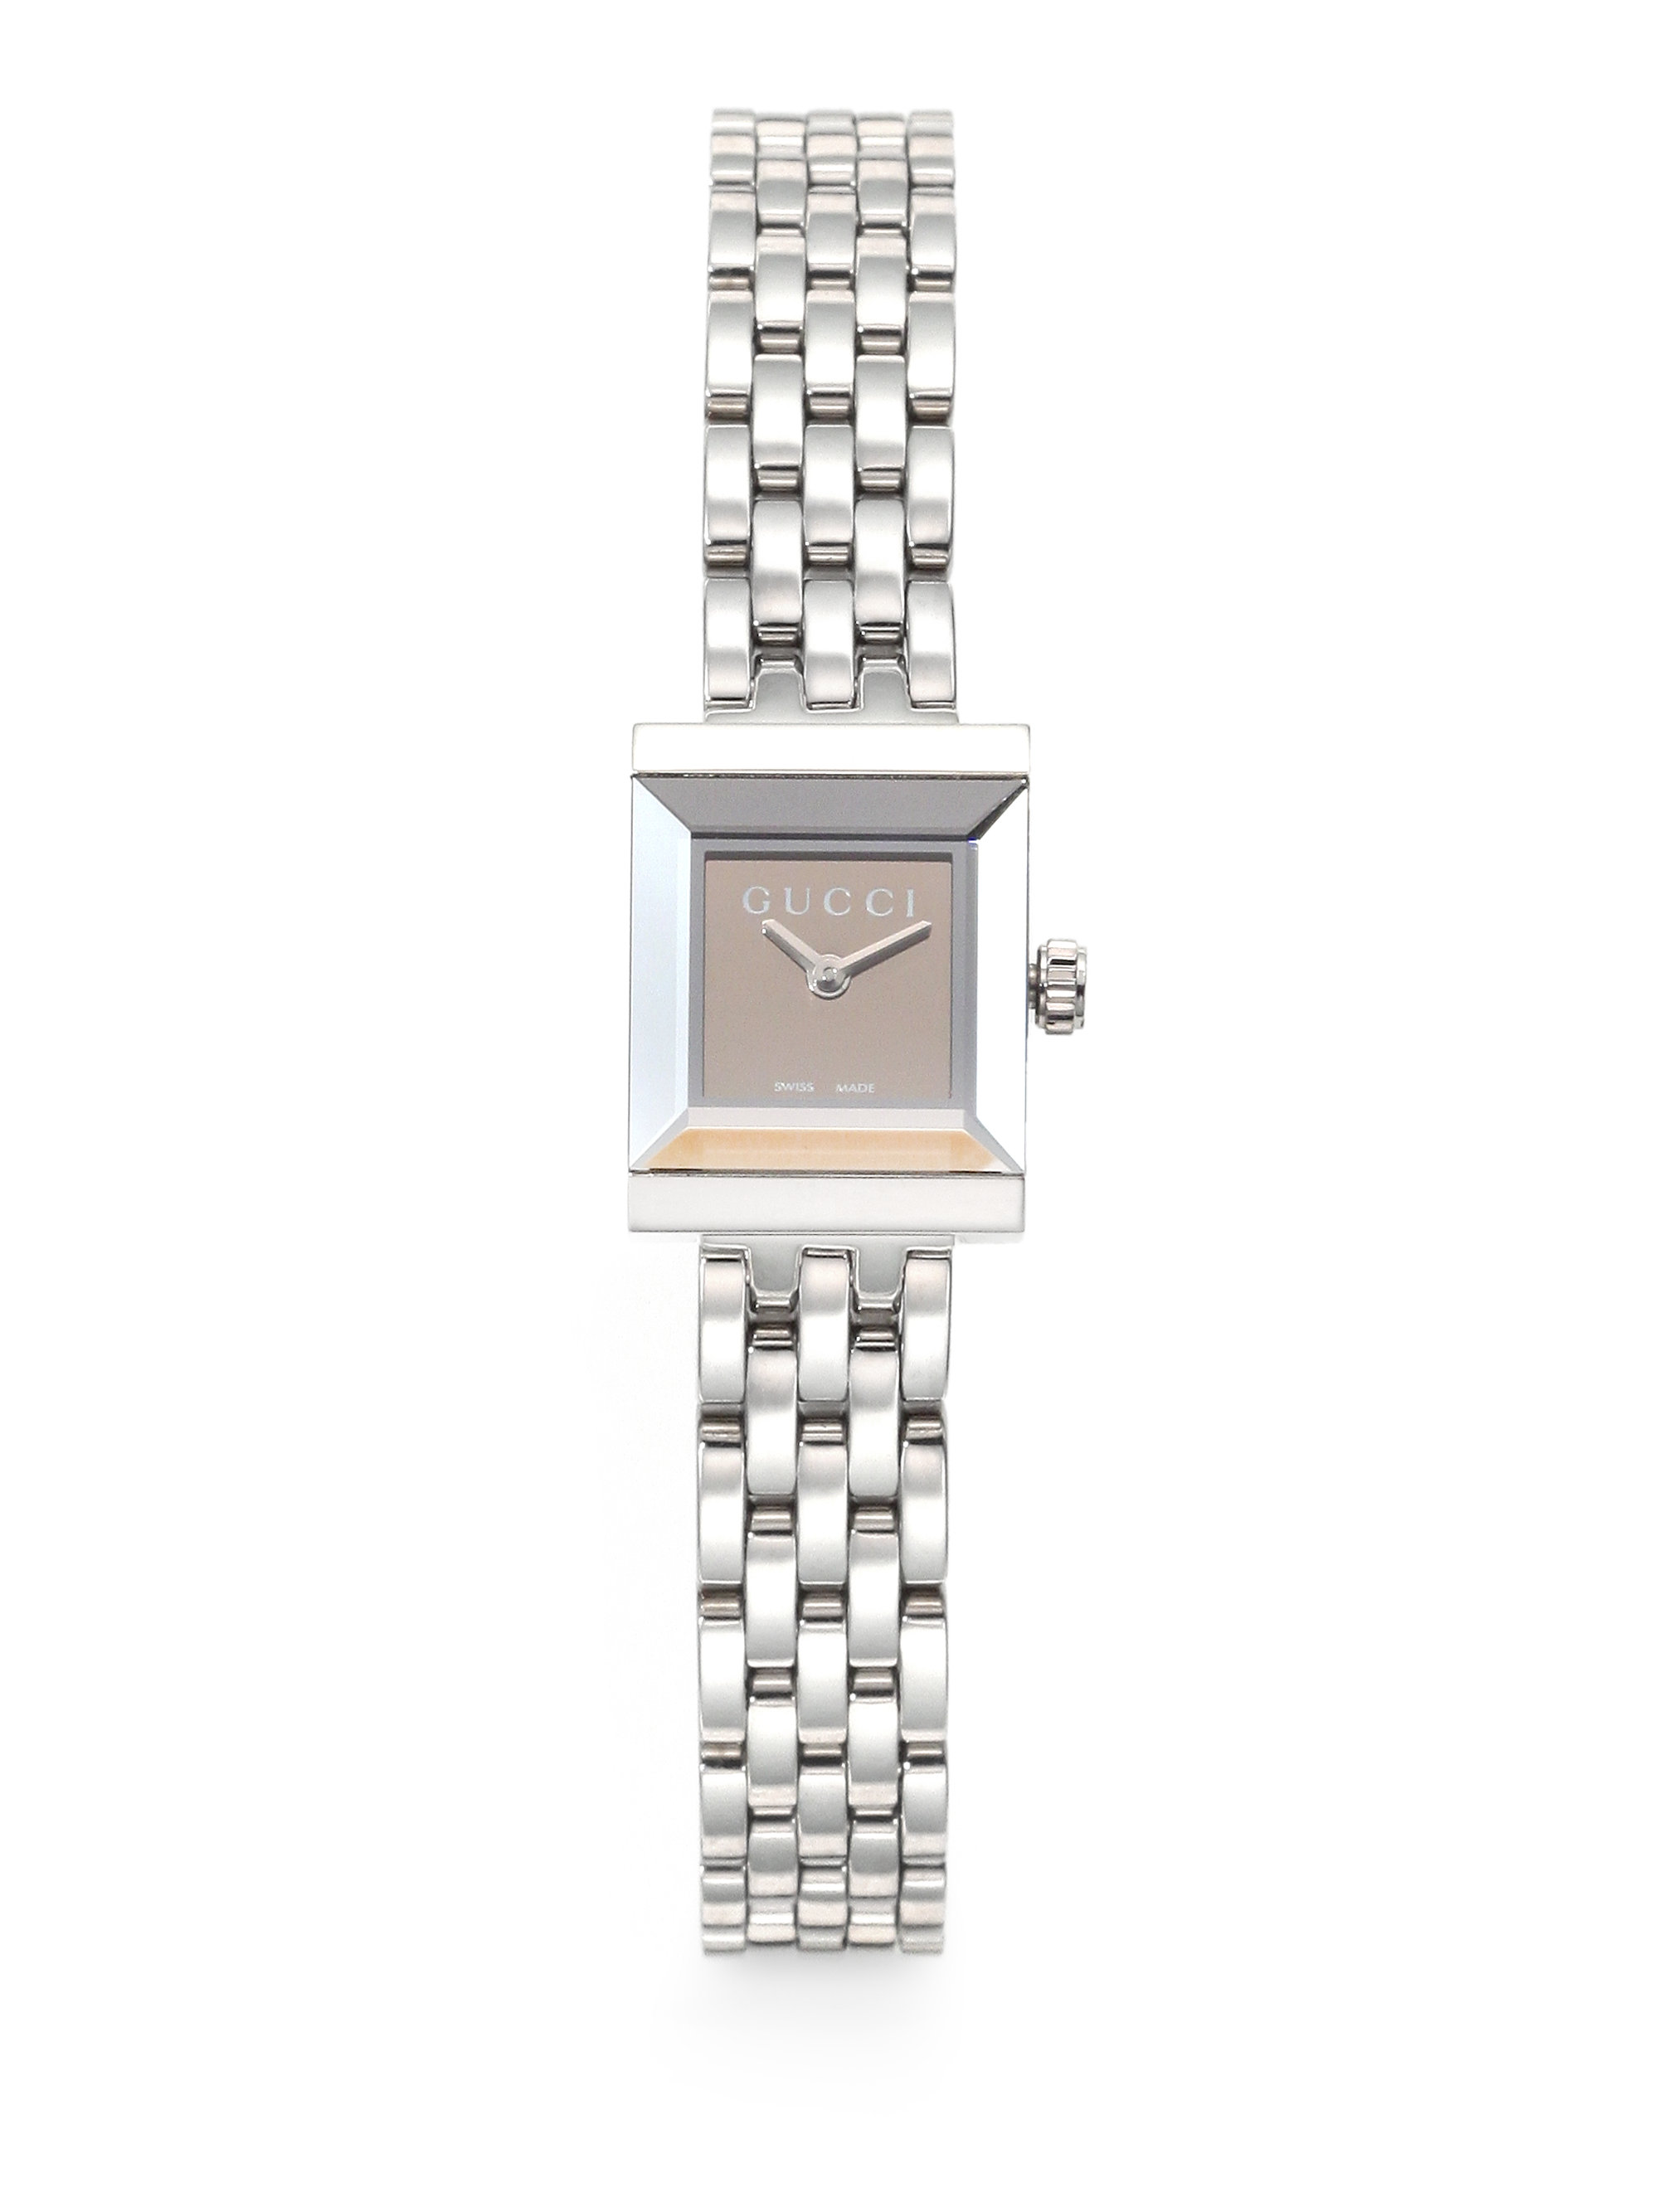 Lyst - Gucci G-frame Stainless Steel Square Watch in Metallic